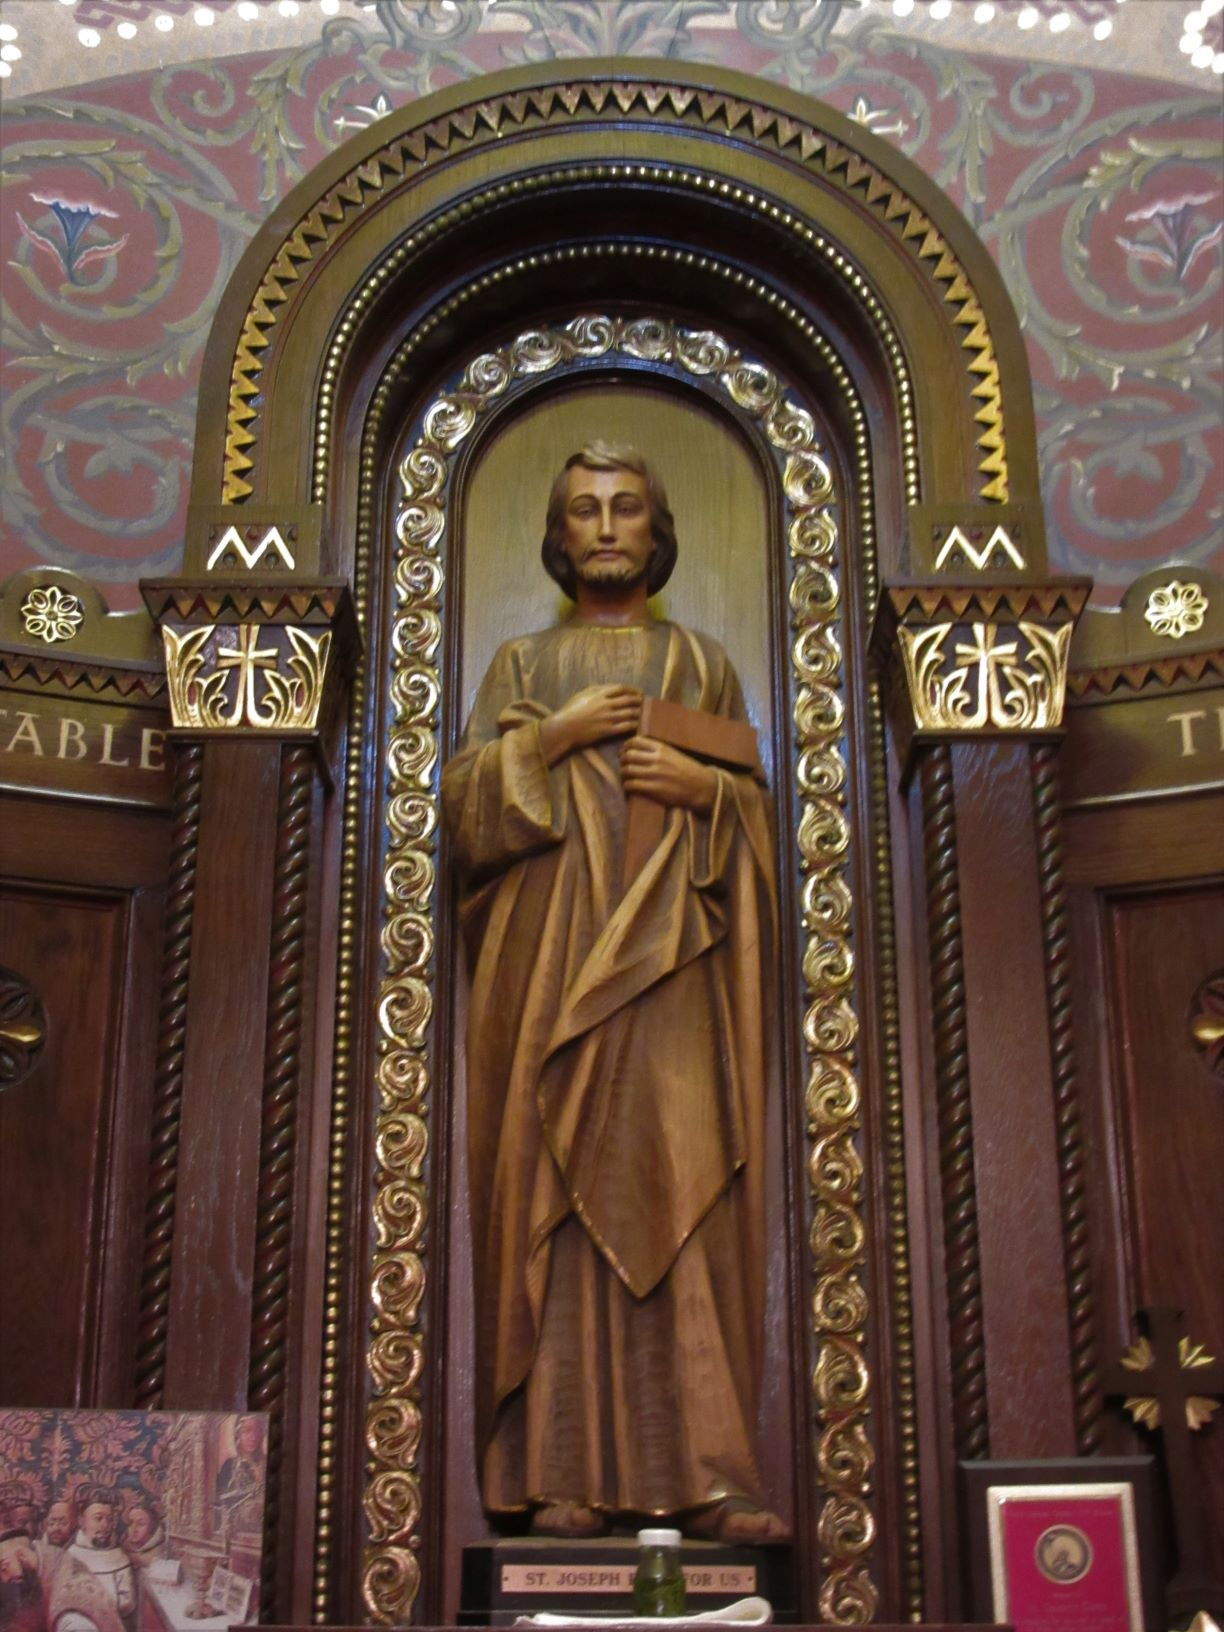 St. Joseph at St. Casimir's